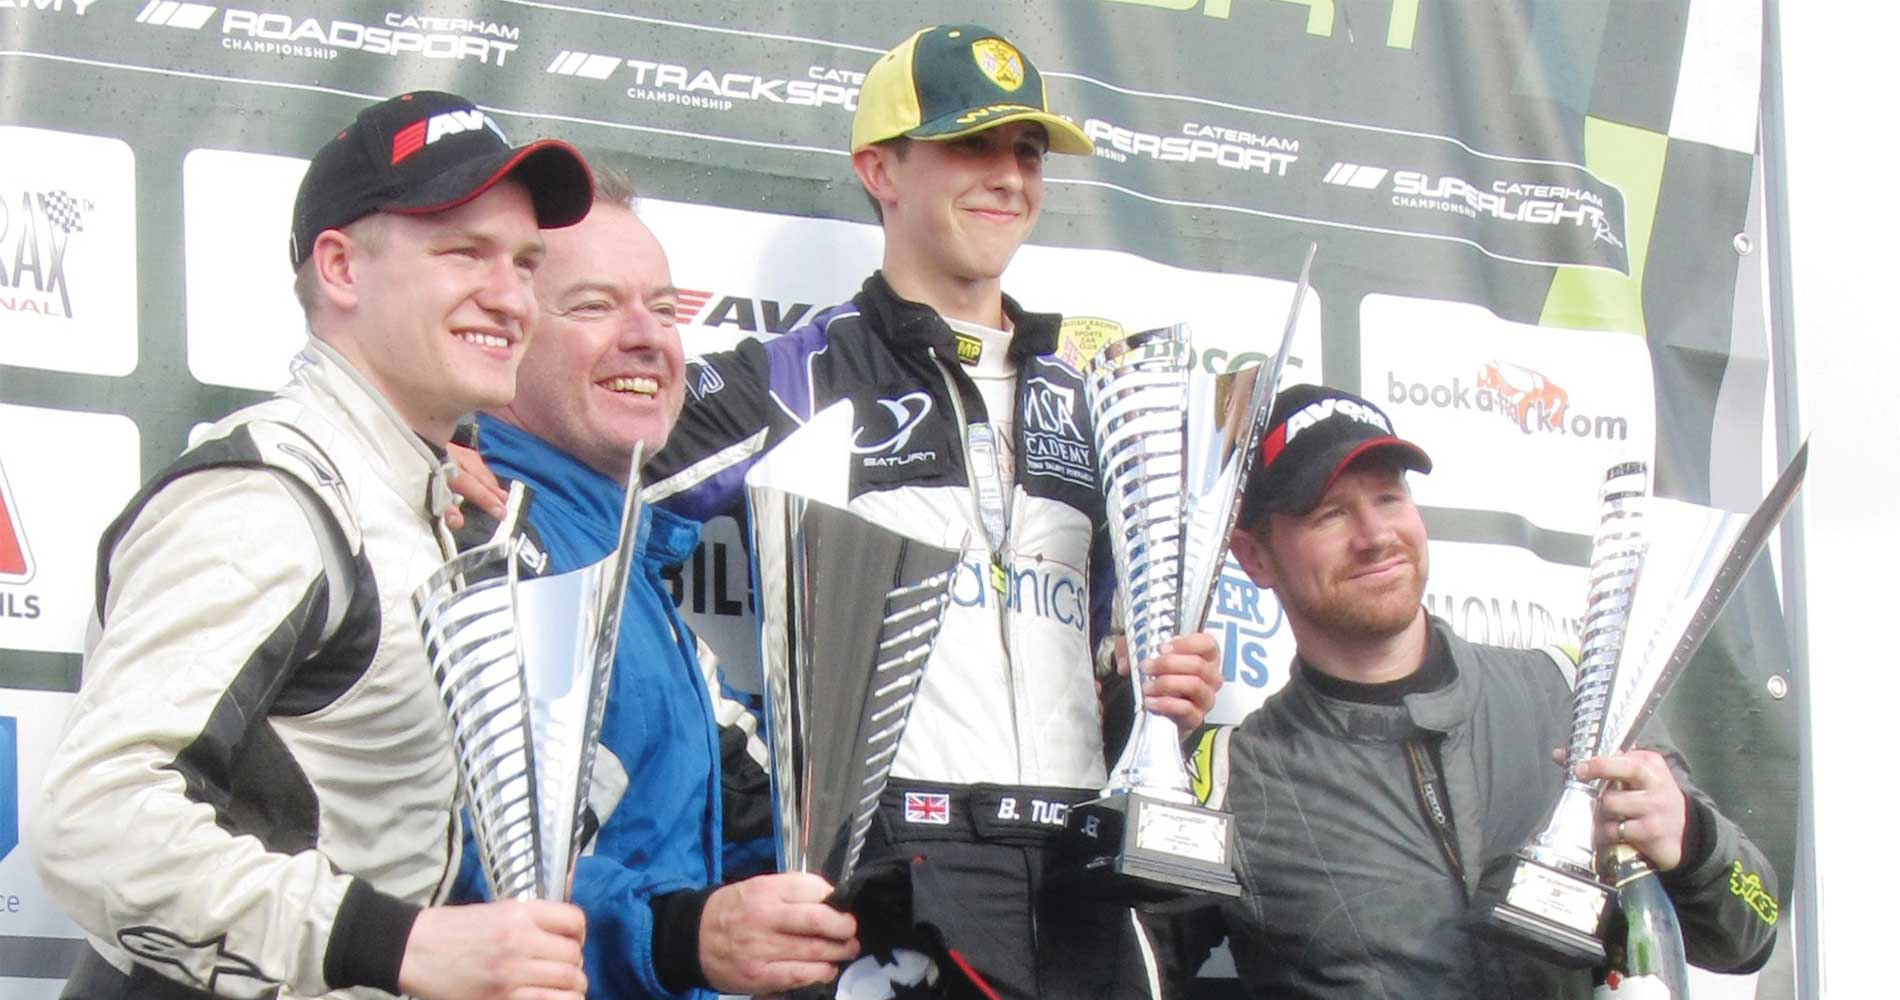 ben-tuck-celebrates-another-win-in-the-2016-caterham-finale-motorsportdays-test-days-2